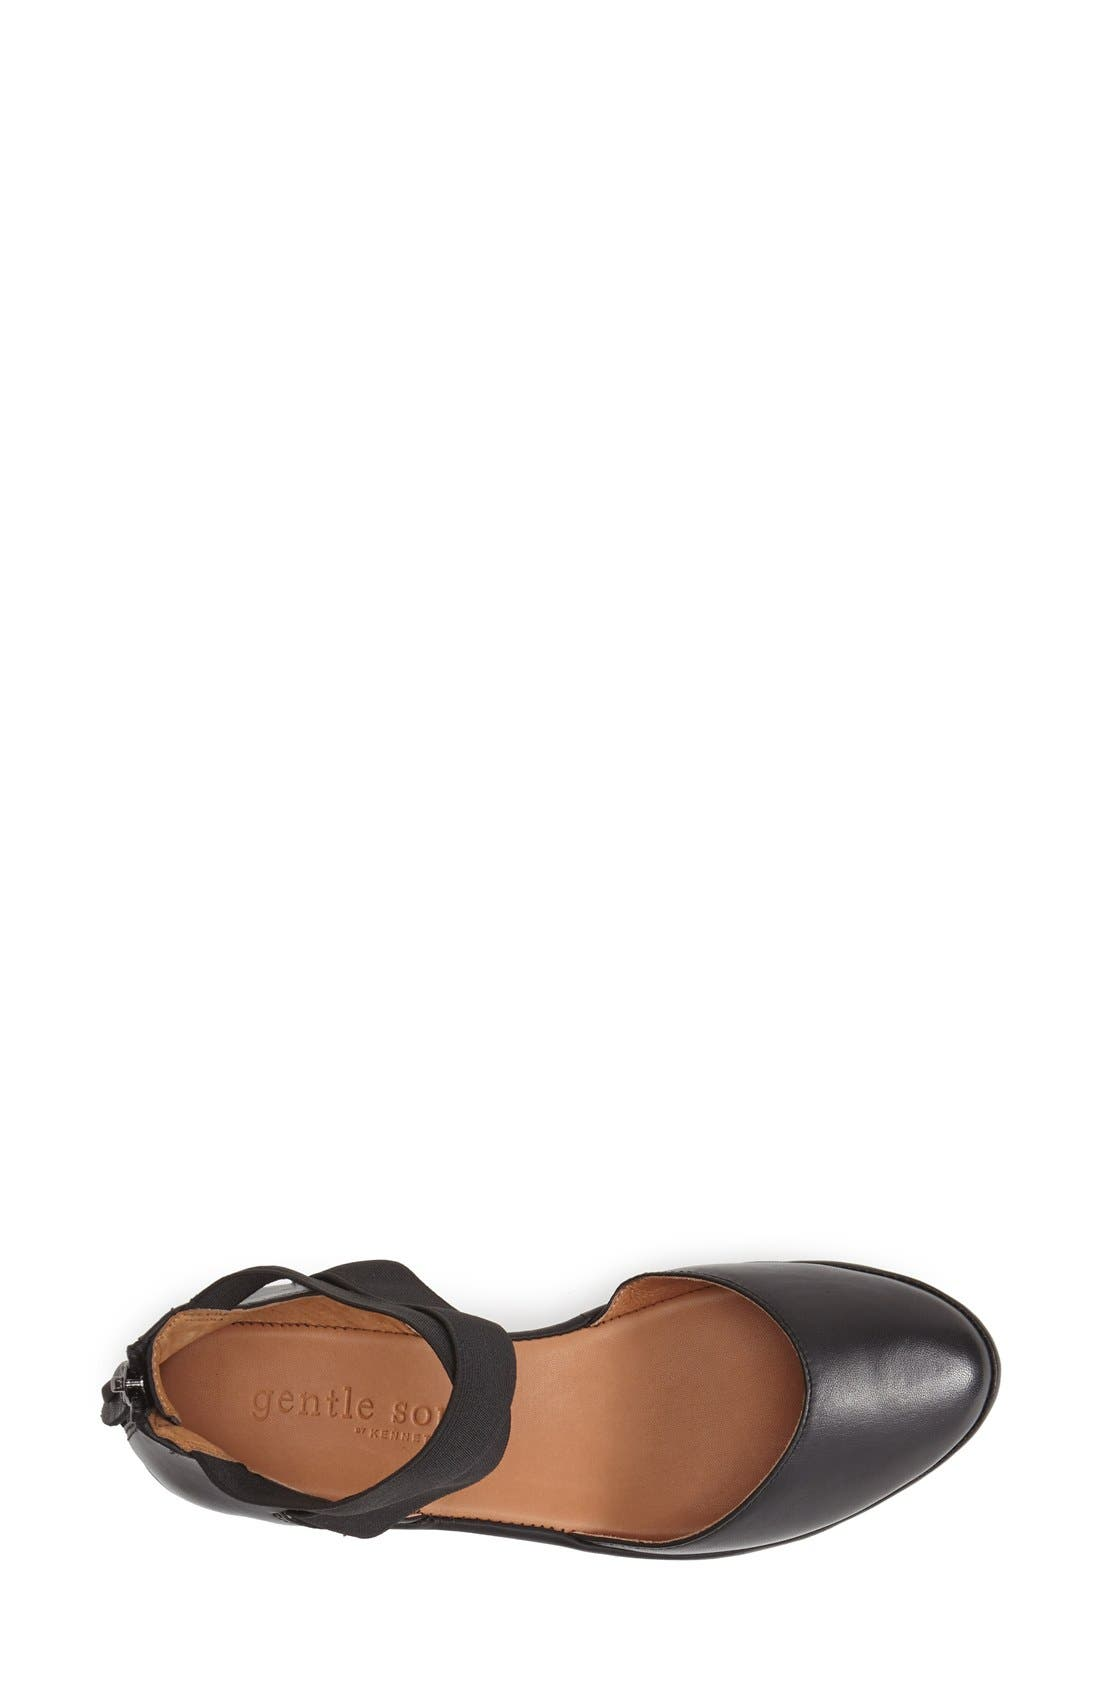 by Kenneth Cole 'Noa' Elastic Strap d'Orsay Sandal,                             Alternate thumbnail 3, color,                             BLACK